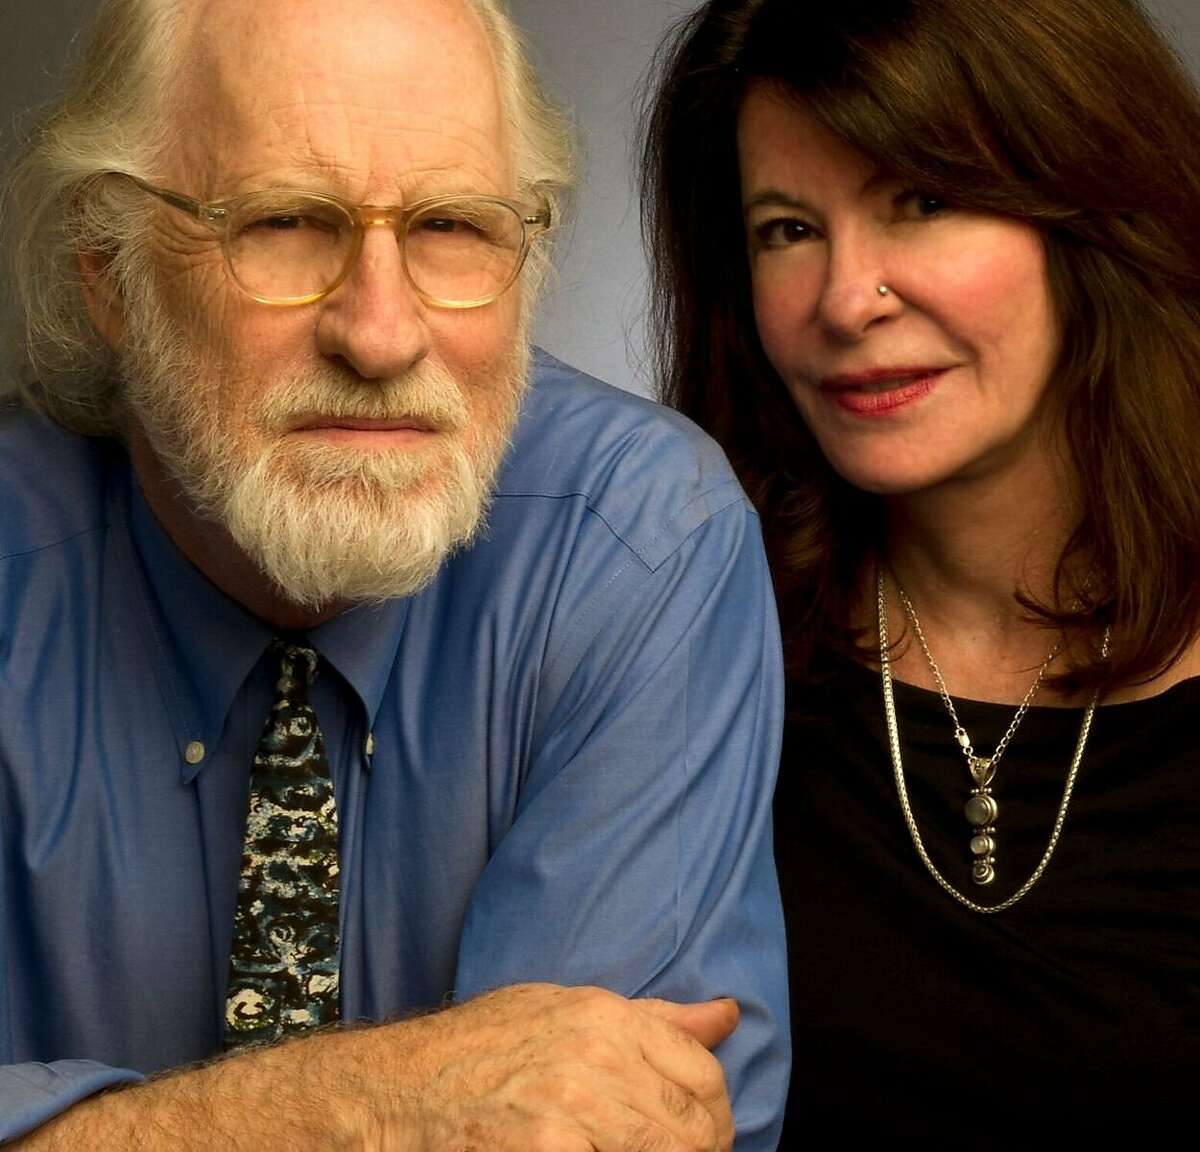 Joel Selvin with co-author Pamela Turley